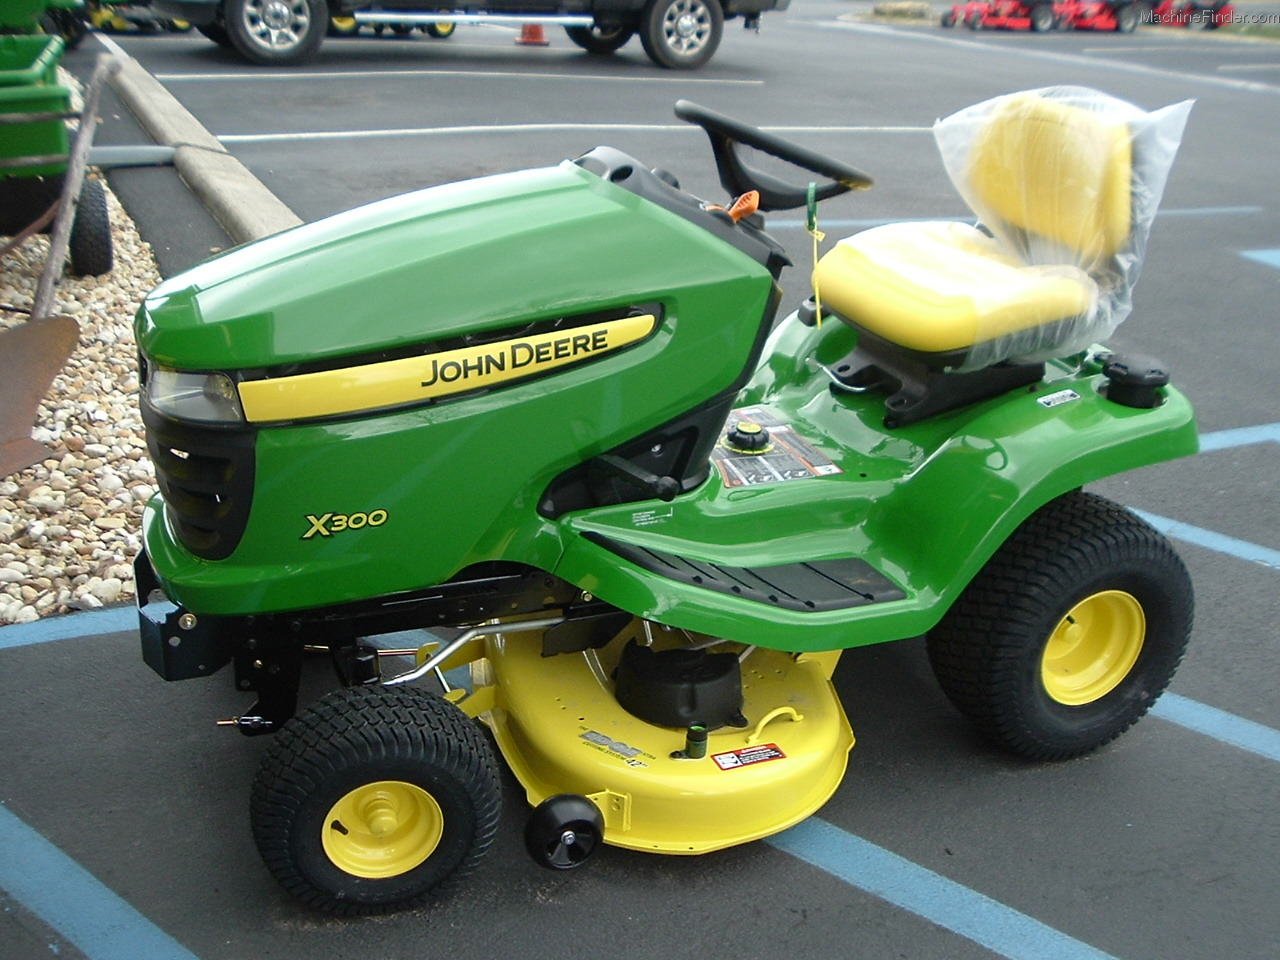 John Deere X300 Lawn & Garden and Commercial Mowing - John ...